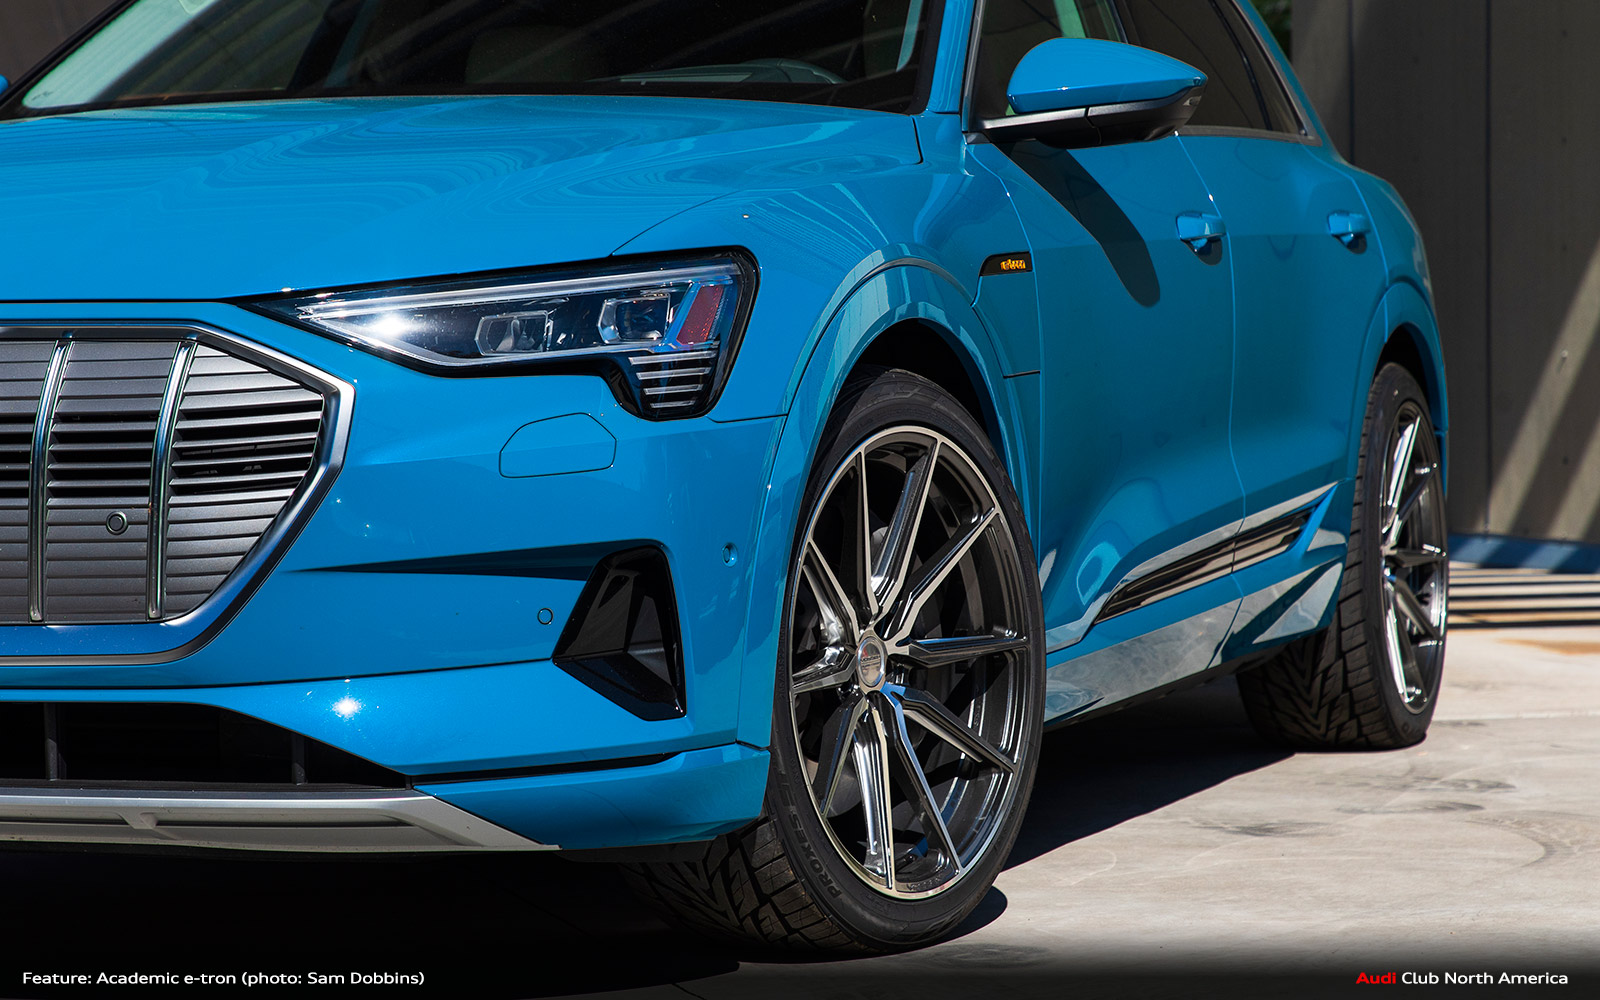 quattro Magazine: Feature Car: Academic e-tron